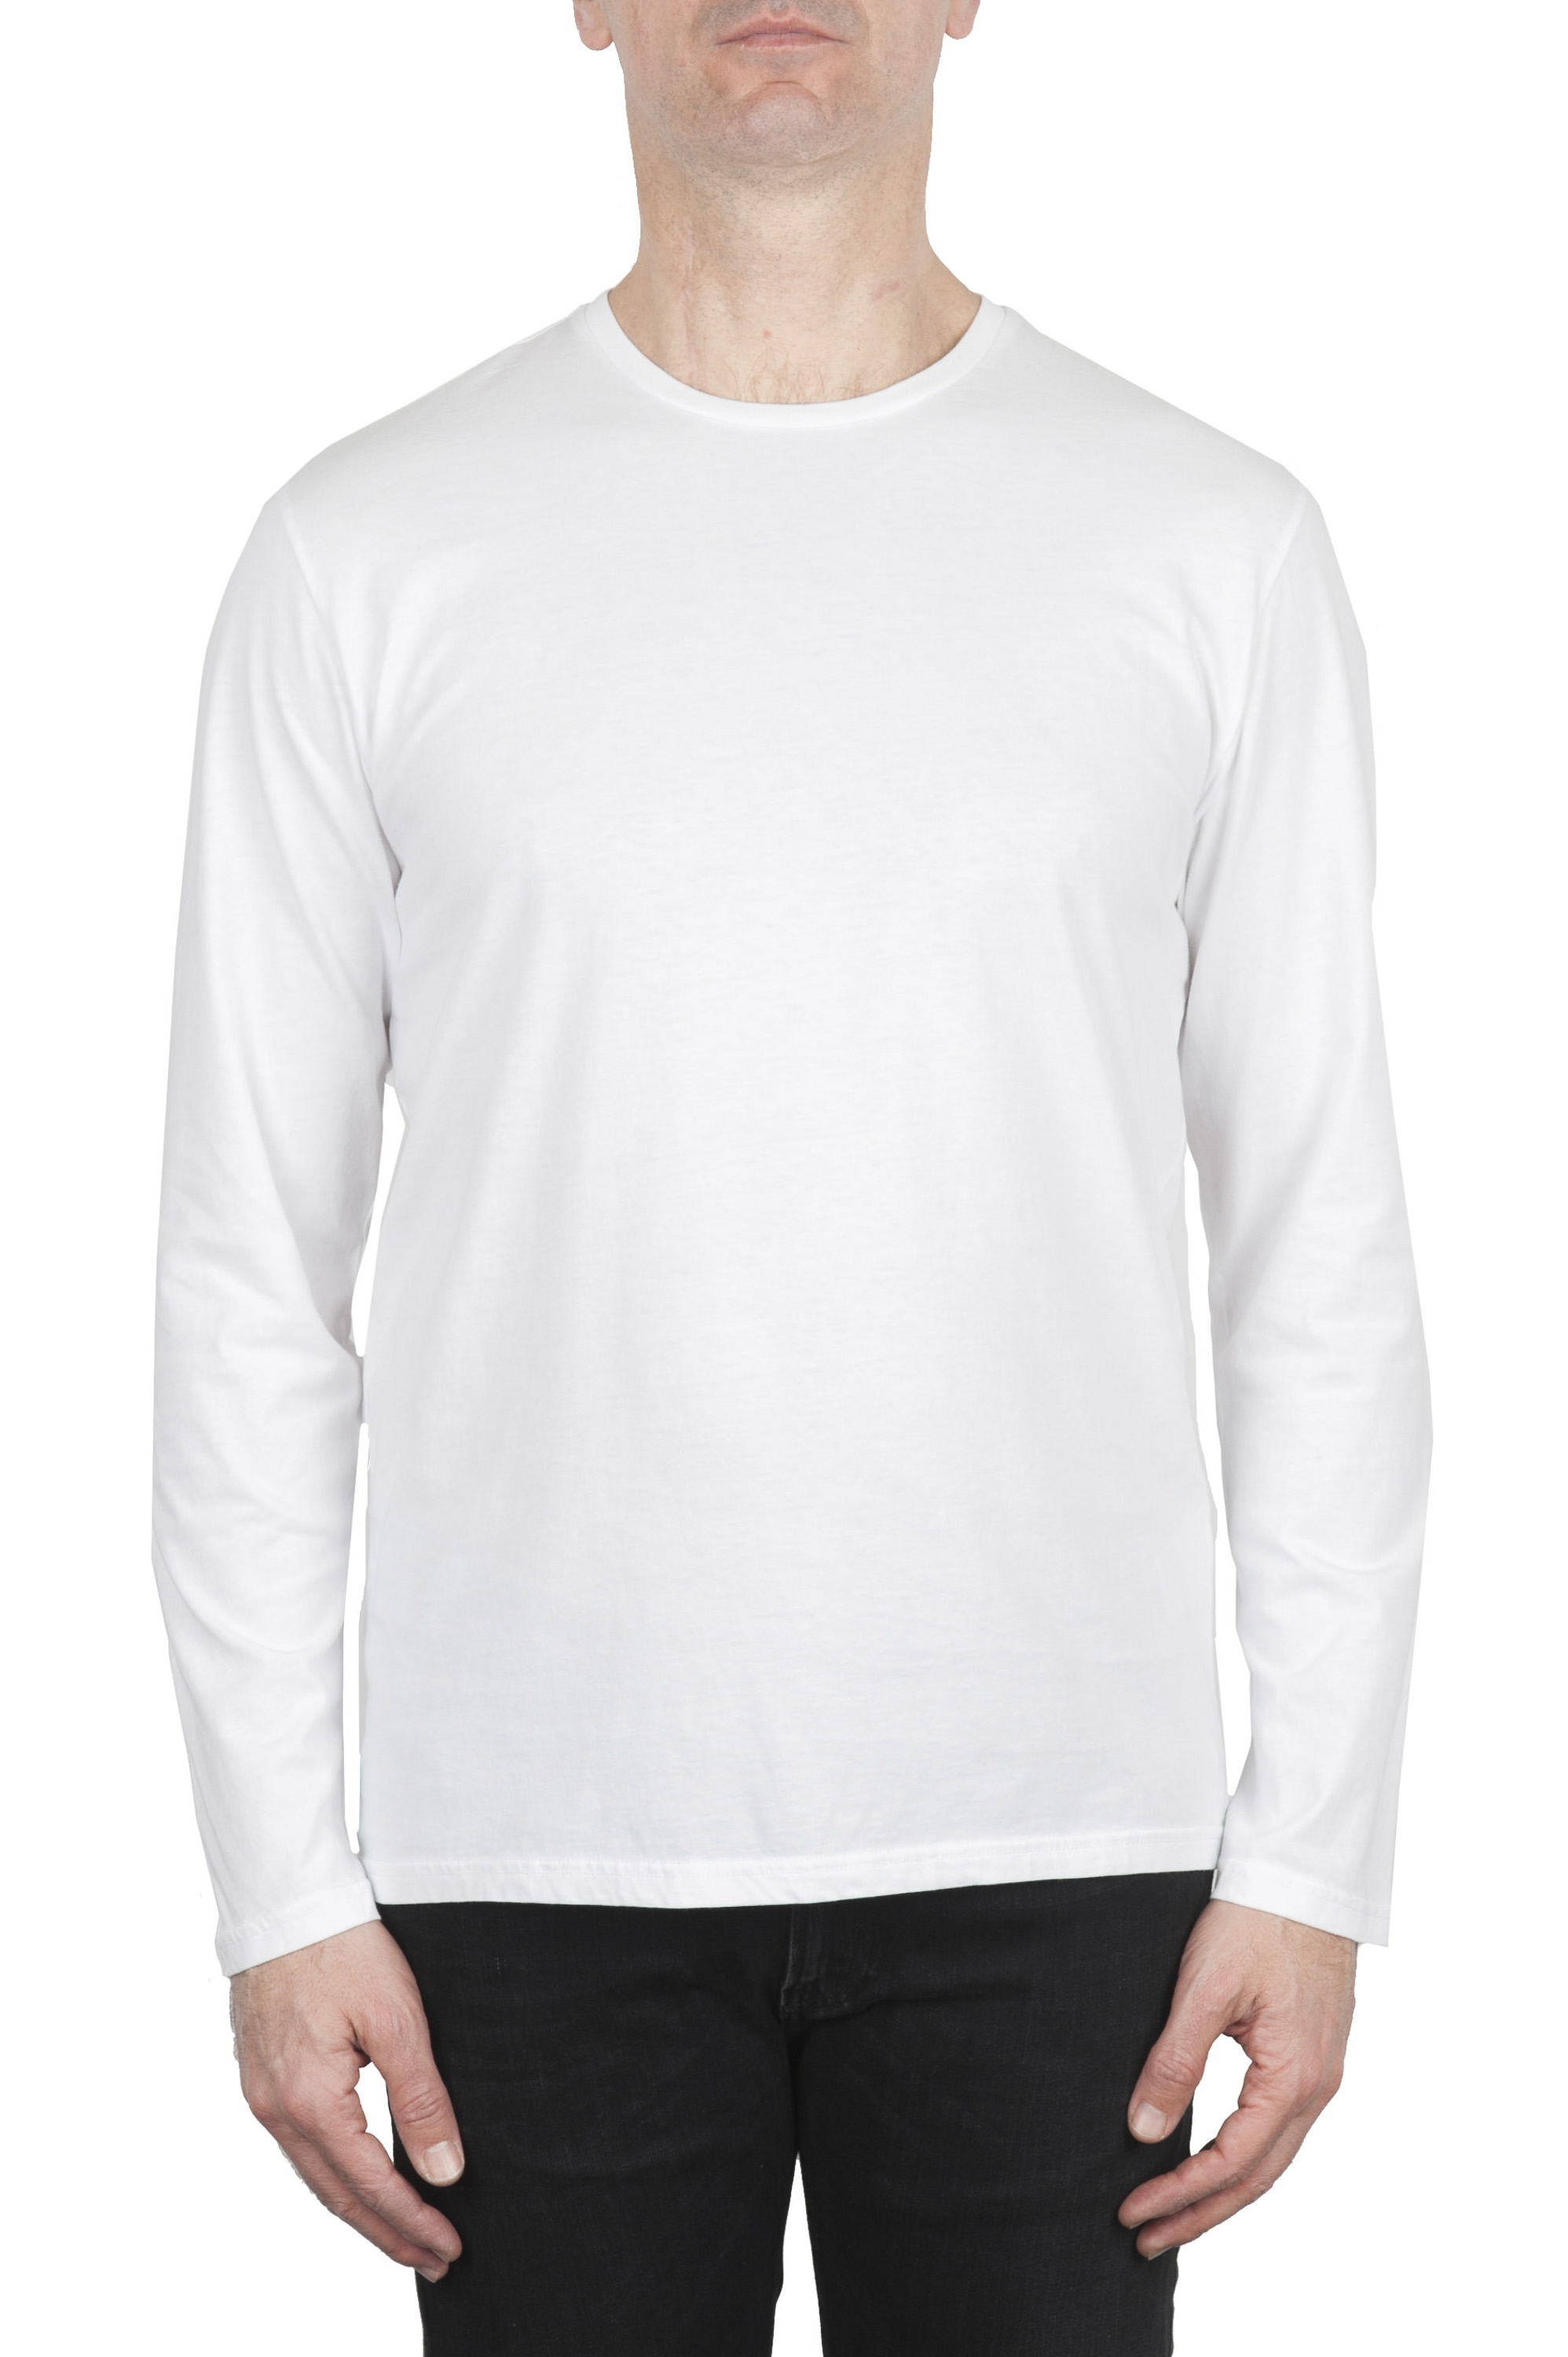 SBU 01999_2020SS Cotton jersey classic long sleeve t-shirt white 01